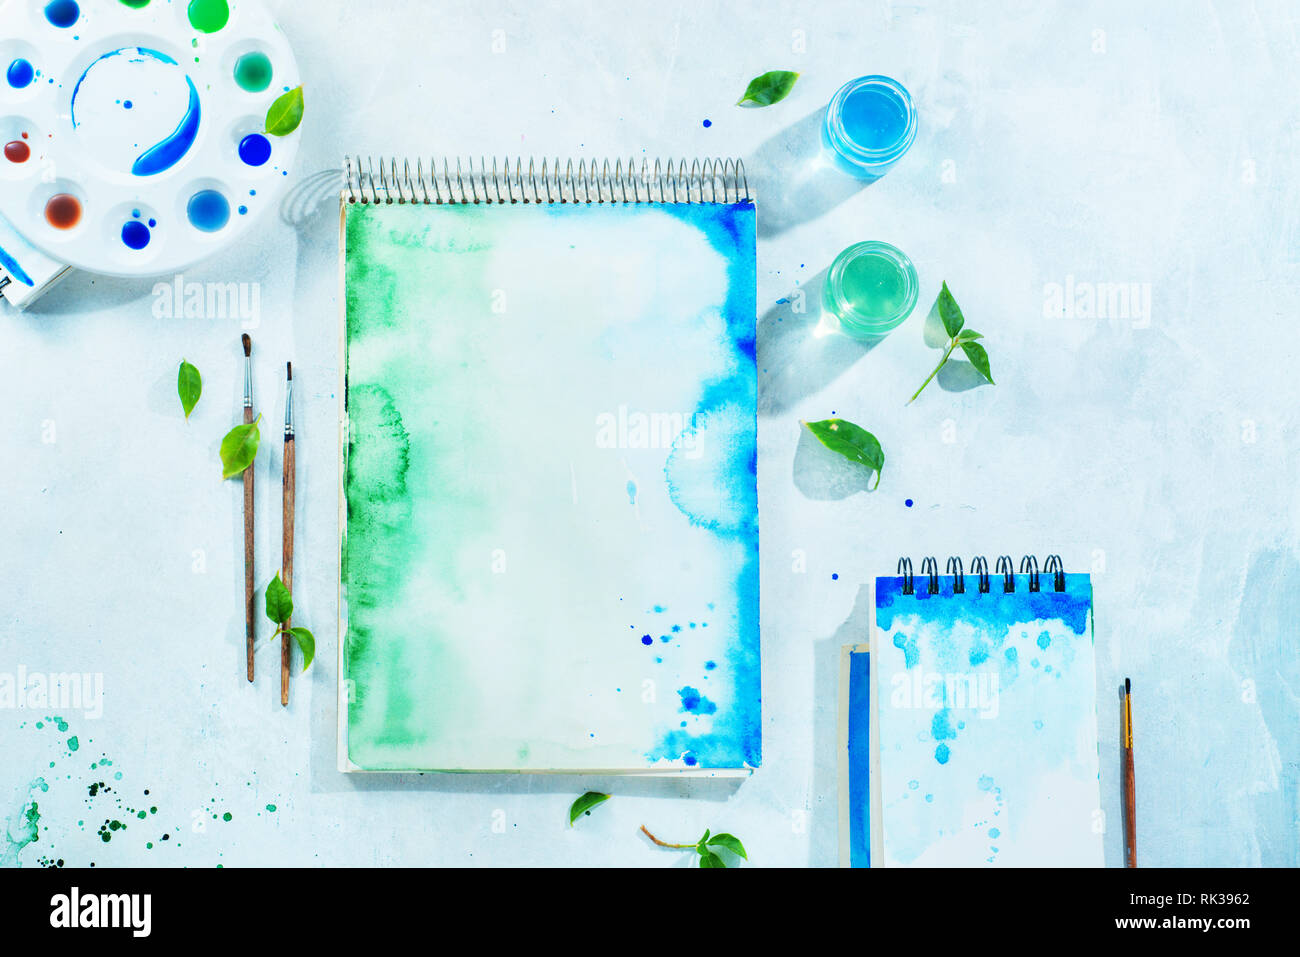 Painting spring concept with artist tools, green and blue watercolor sketchbooks, brushes and color palette on a white background with copy space - Stock Image